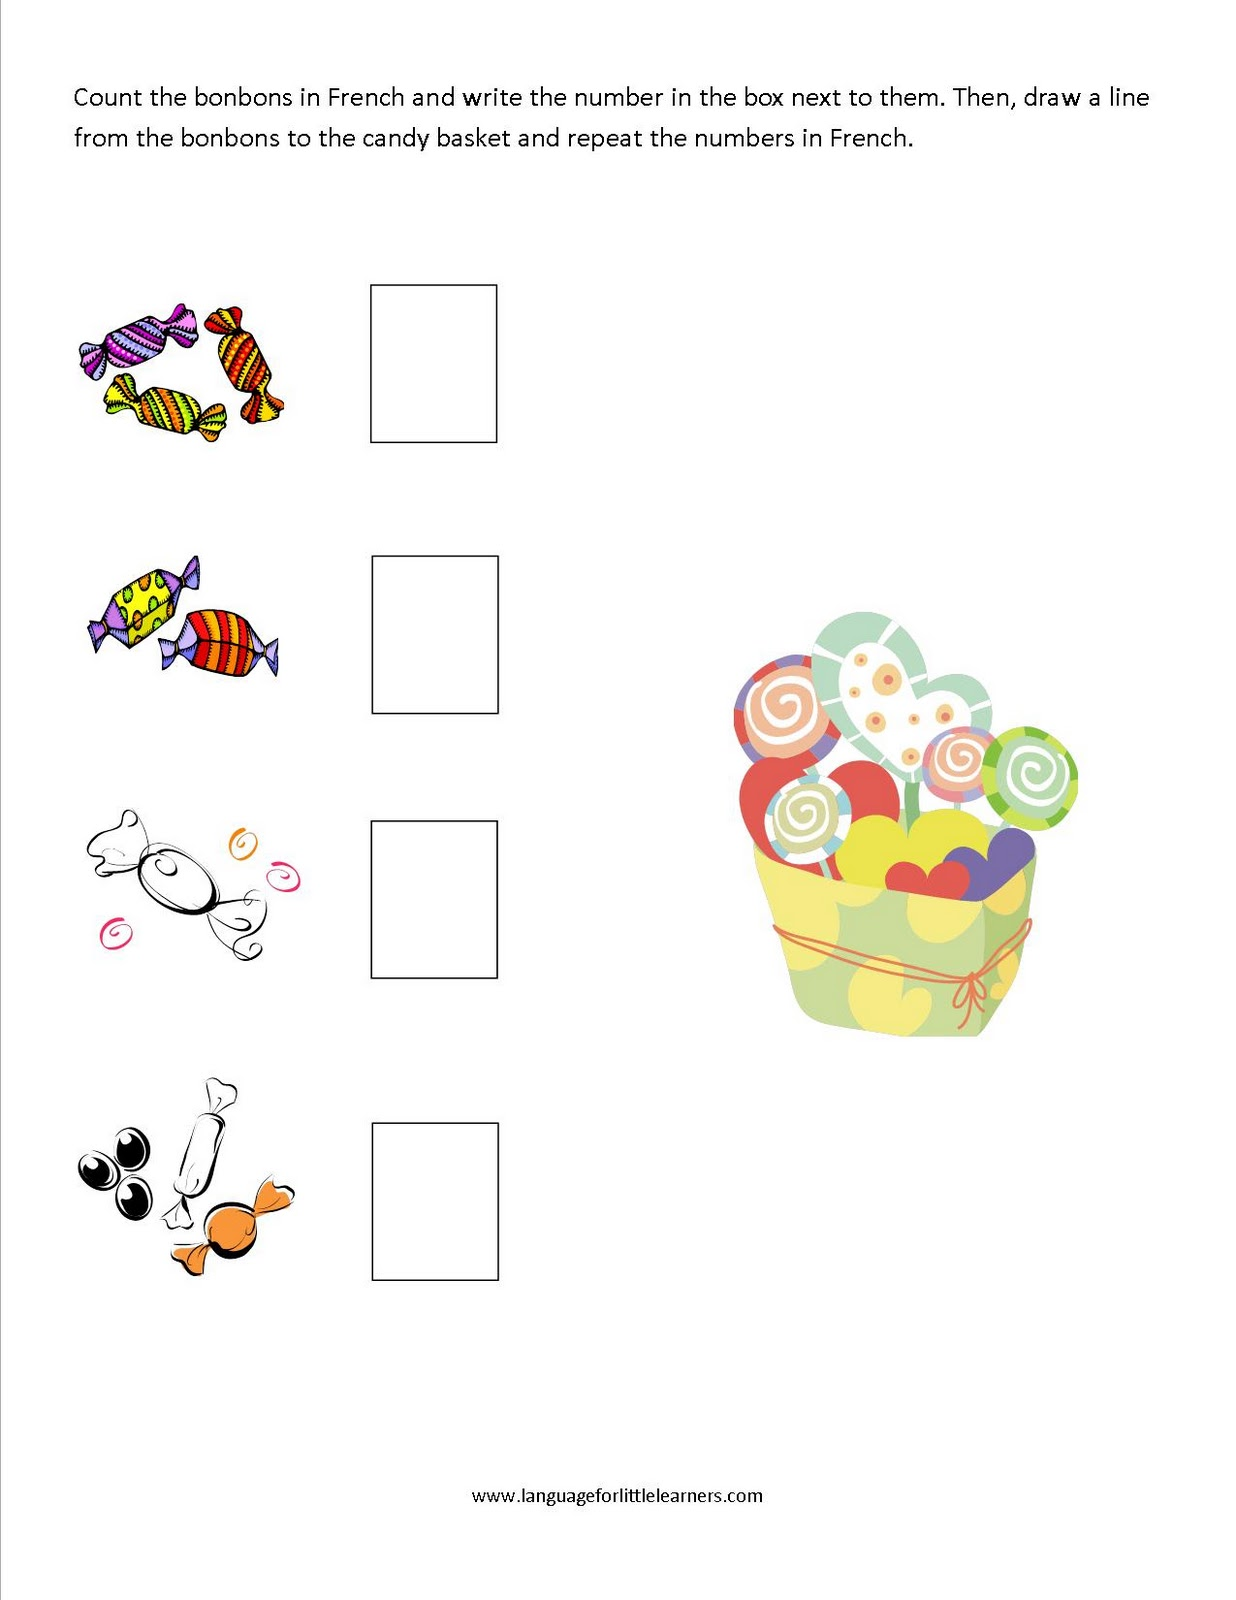 Language For Little Learners March